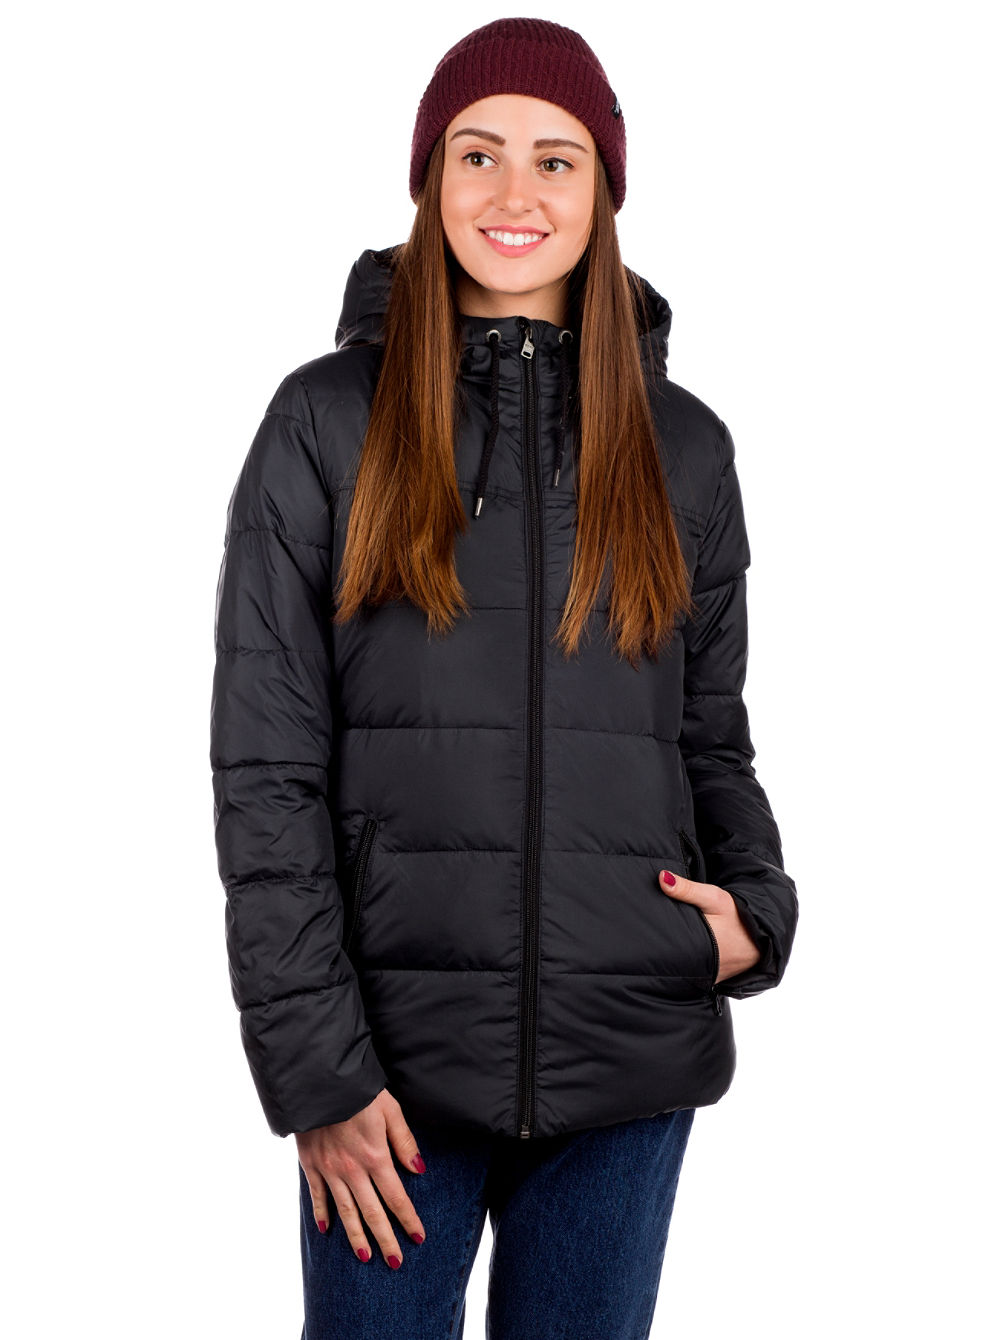 Harbor Days Insulator Jacket